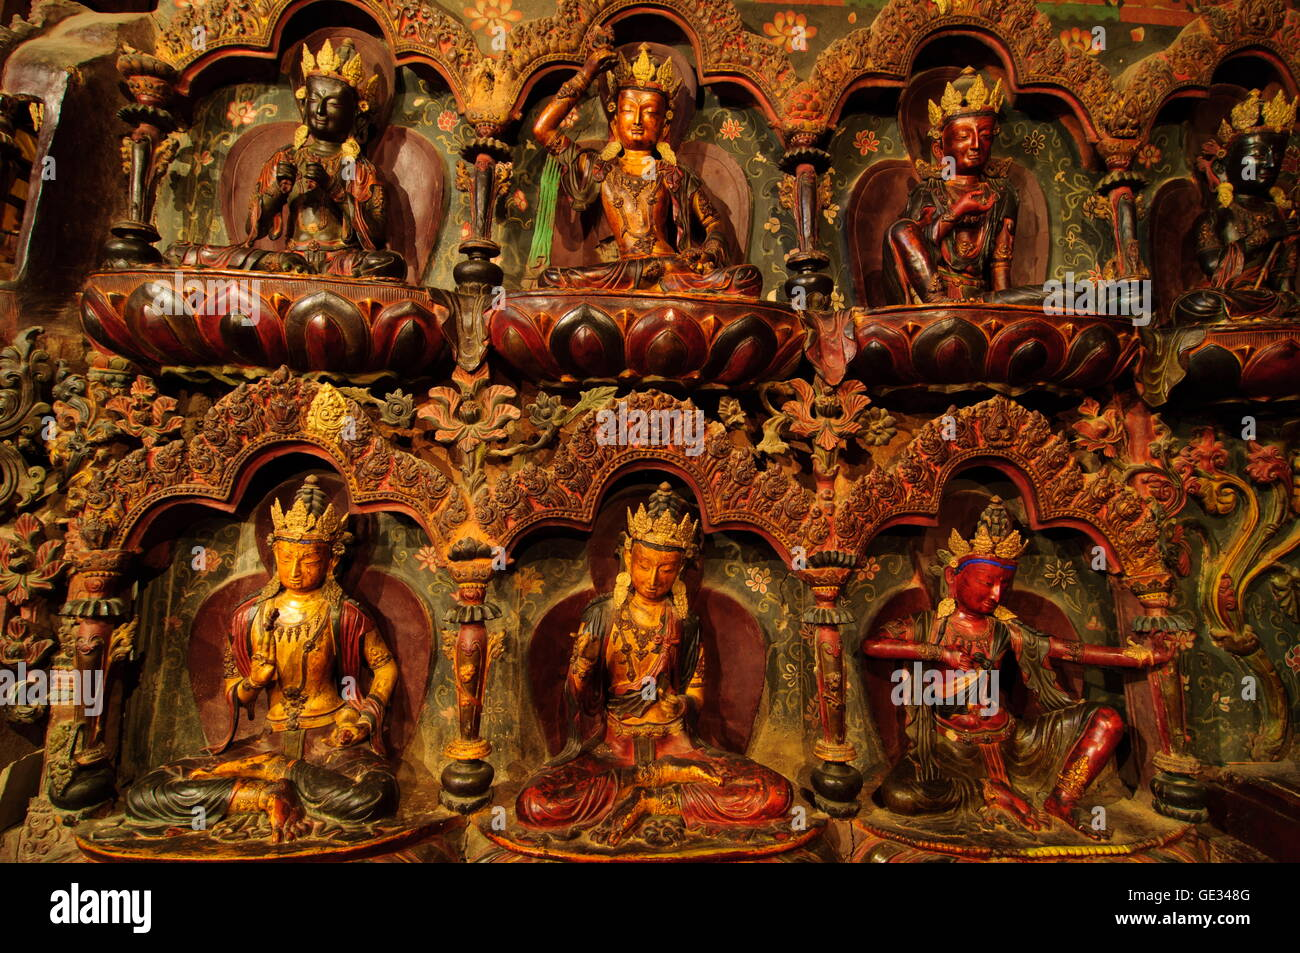 geography / travel, China, Tibet, Gyantse, statues of Buddha, Additional-Rights-Clearance-Info-Not-Available - Stock Image